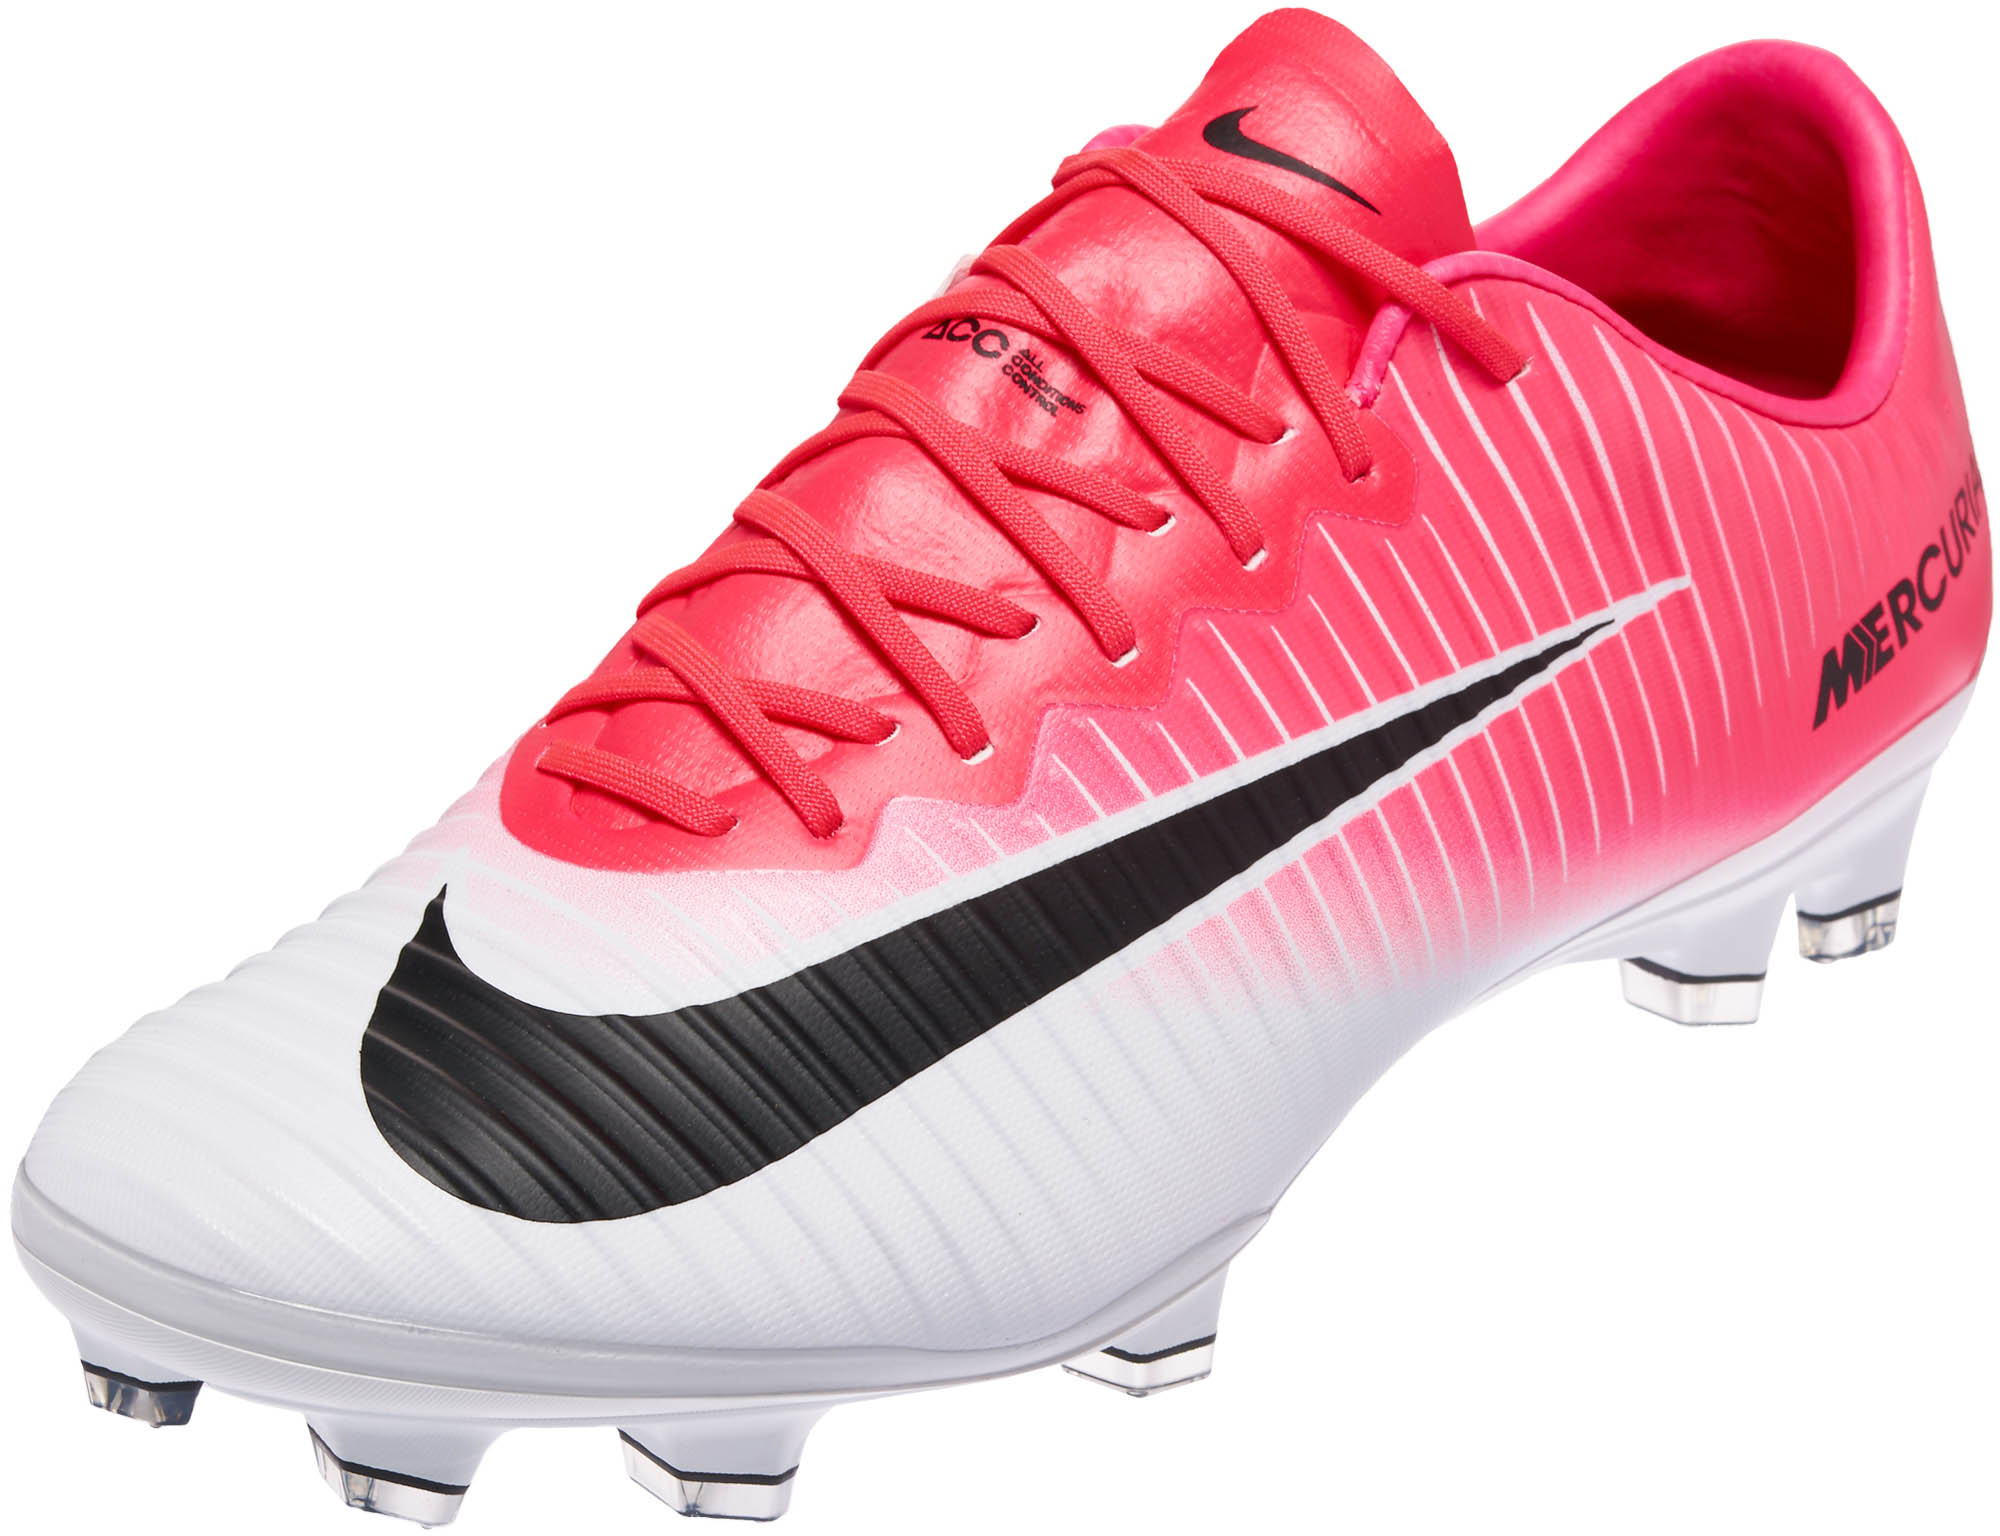 Nike Mercurial Vapor XI - Pink Mercurial Soccer Cleats feebcbeccabbe